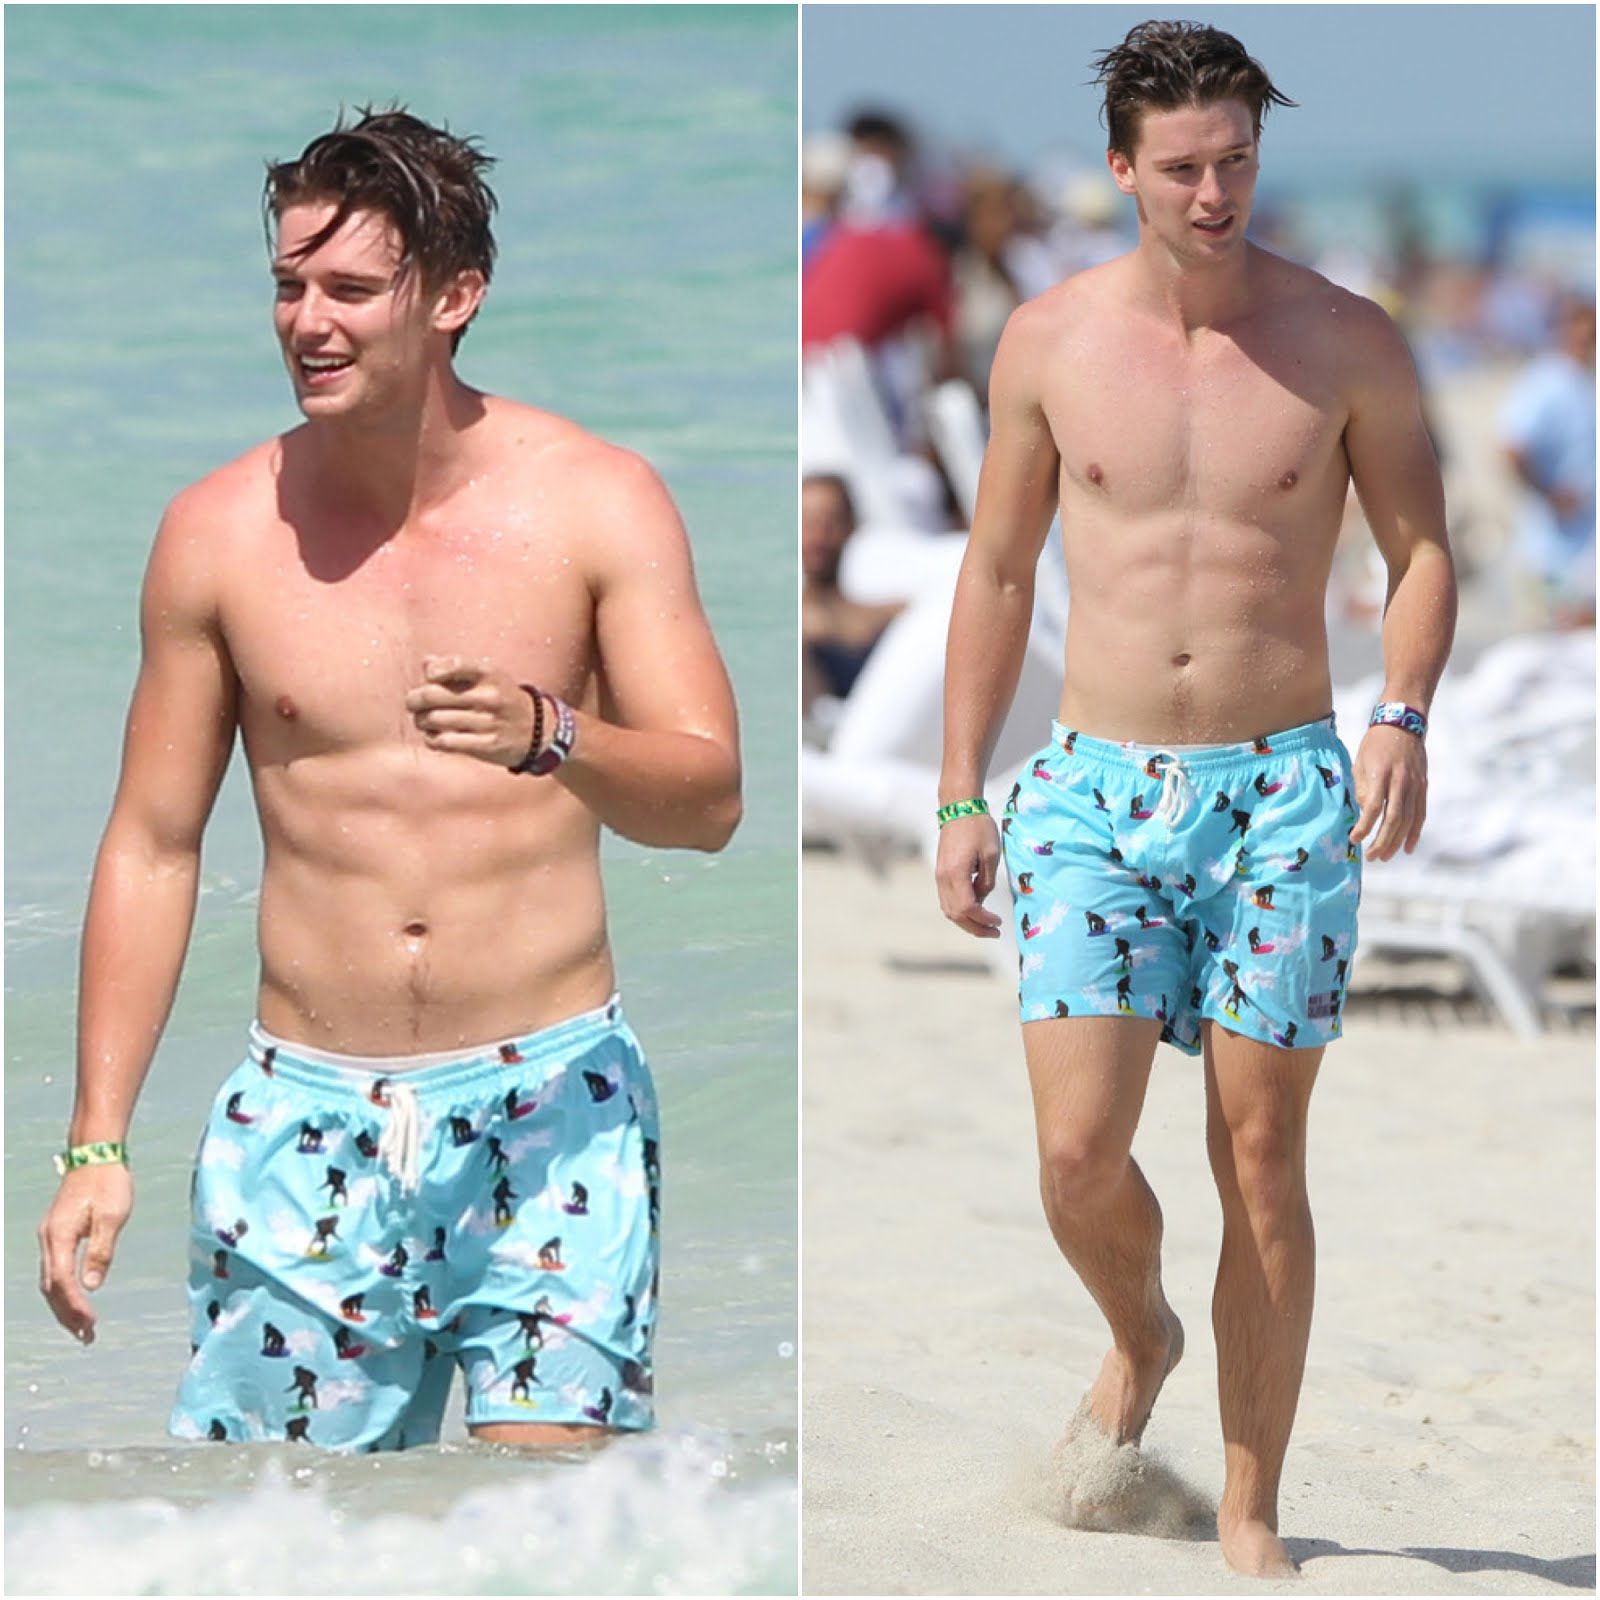 c842180096981 What's he wearing?: Patrick Schwarzenegger's Ambsn swim shorts ...